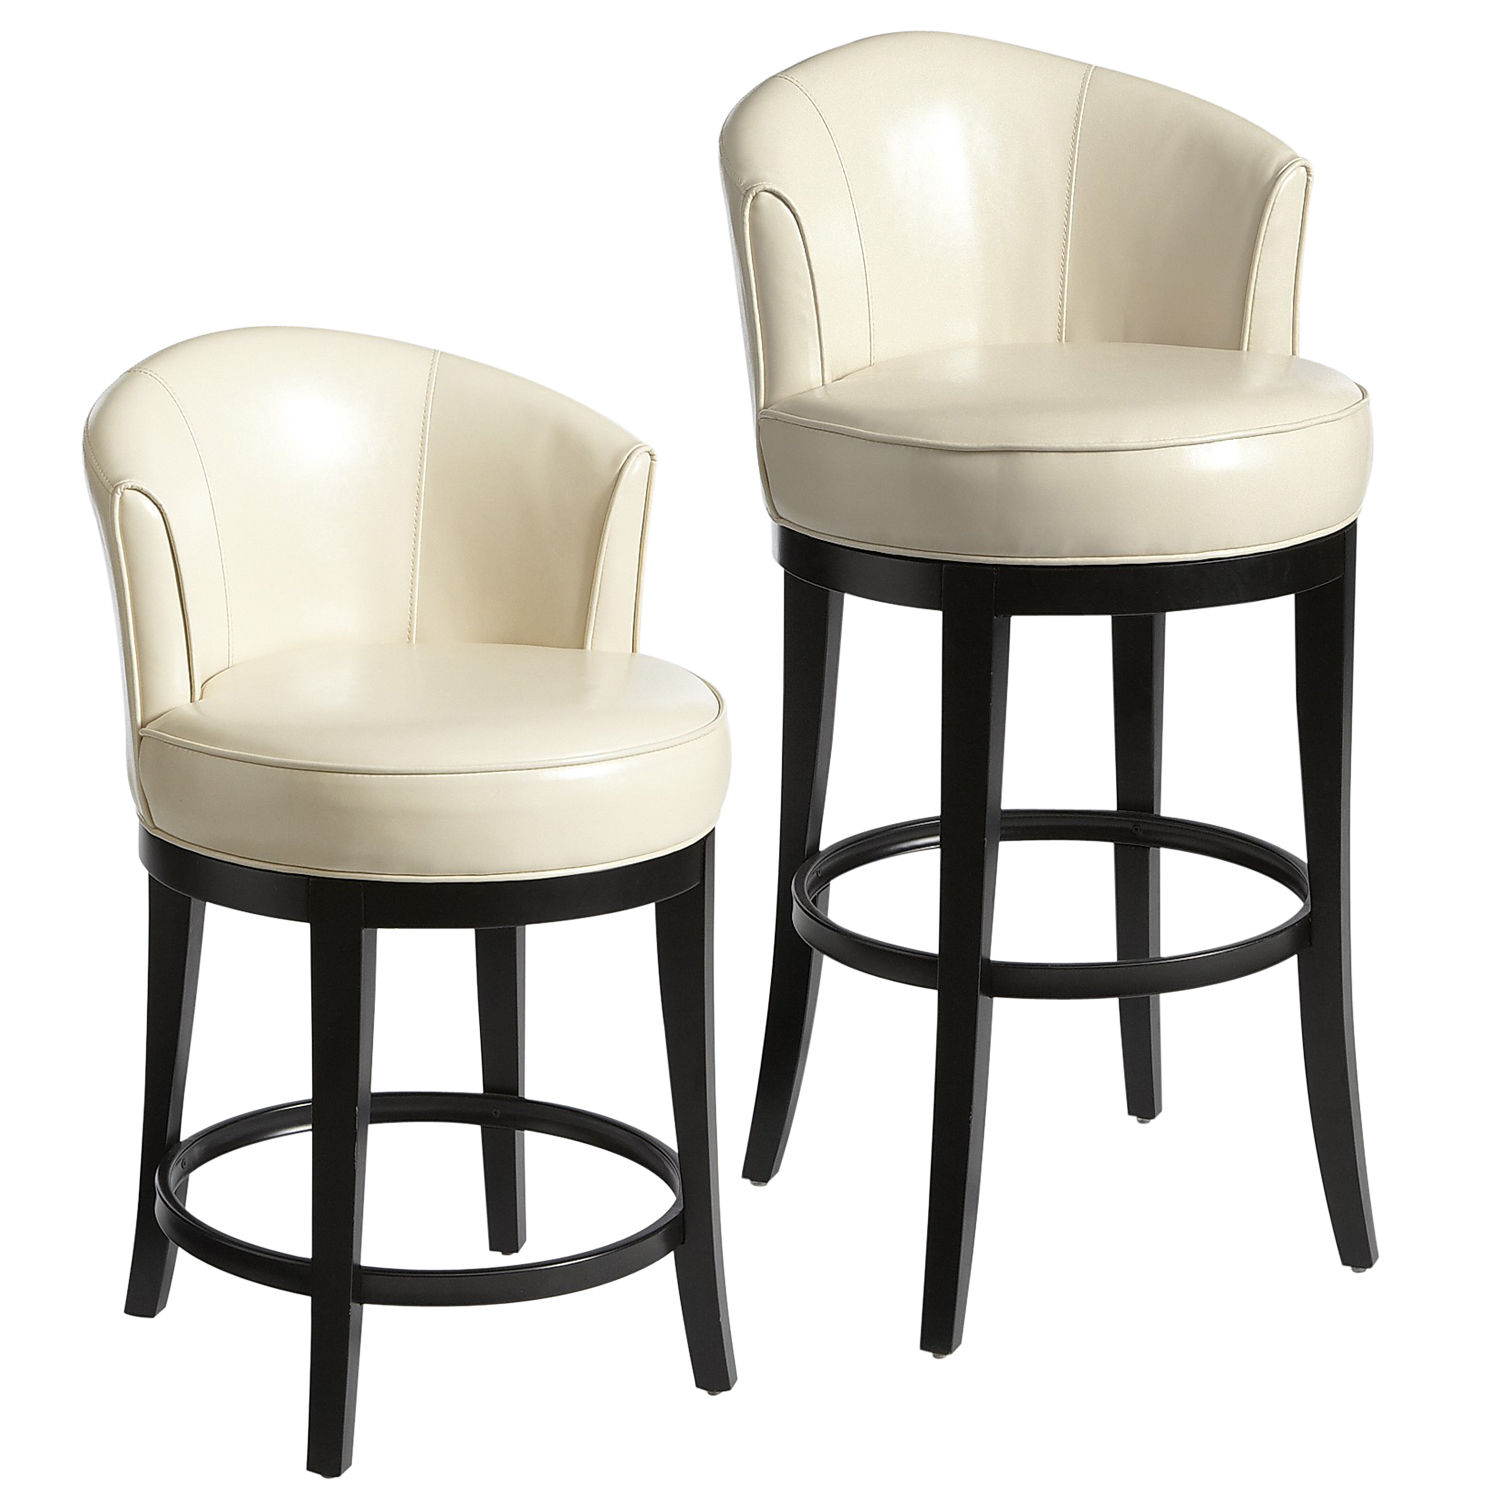 Swivel Bar Stools with Backs | Bar Stools Low Back | Seagrass Bar Stools